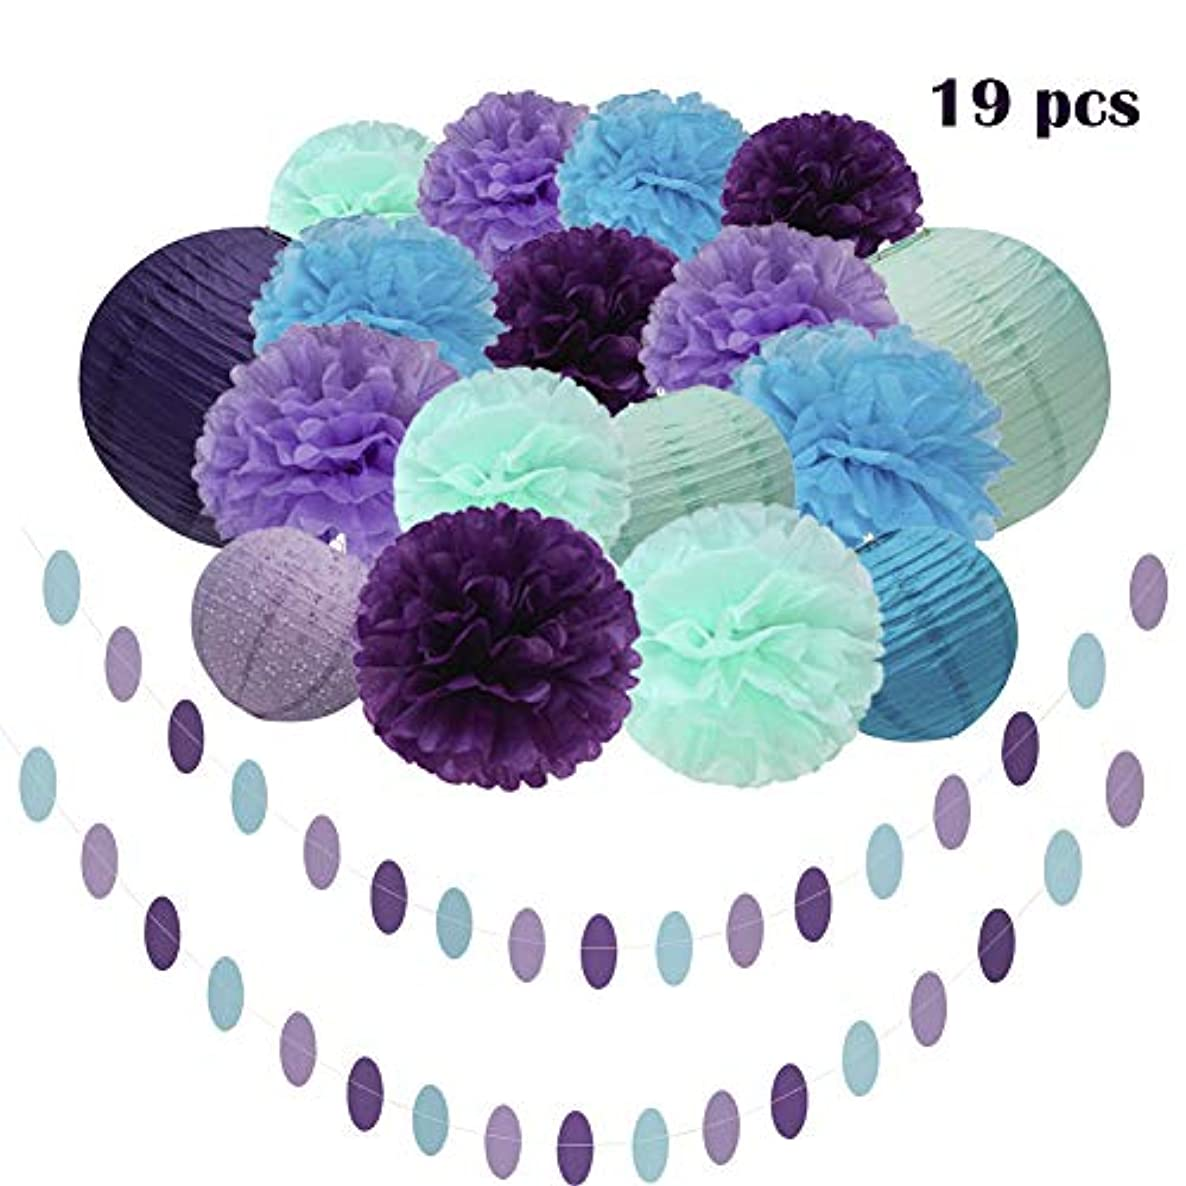 Mermaid Party Decorations Supplies ,19Pcs Teal Lavender Purple Mint Tissue Paper Flower Pom Poms Lanterns Polka Dot Triangle Garland Banner for Girls Birthday party,Under the Sea Party,Frozen Party Supplies,Baby Shower, Bridal shower Decorations